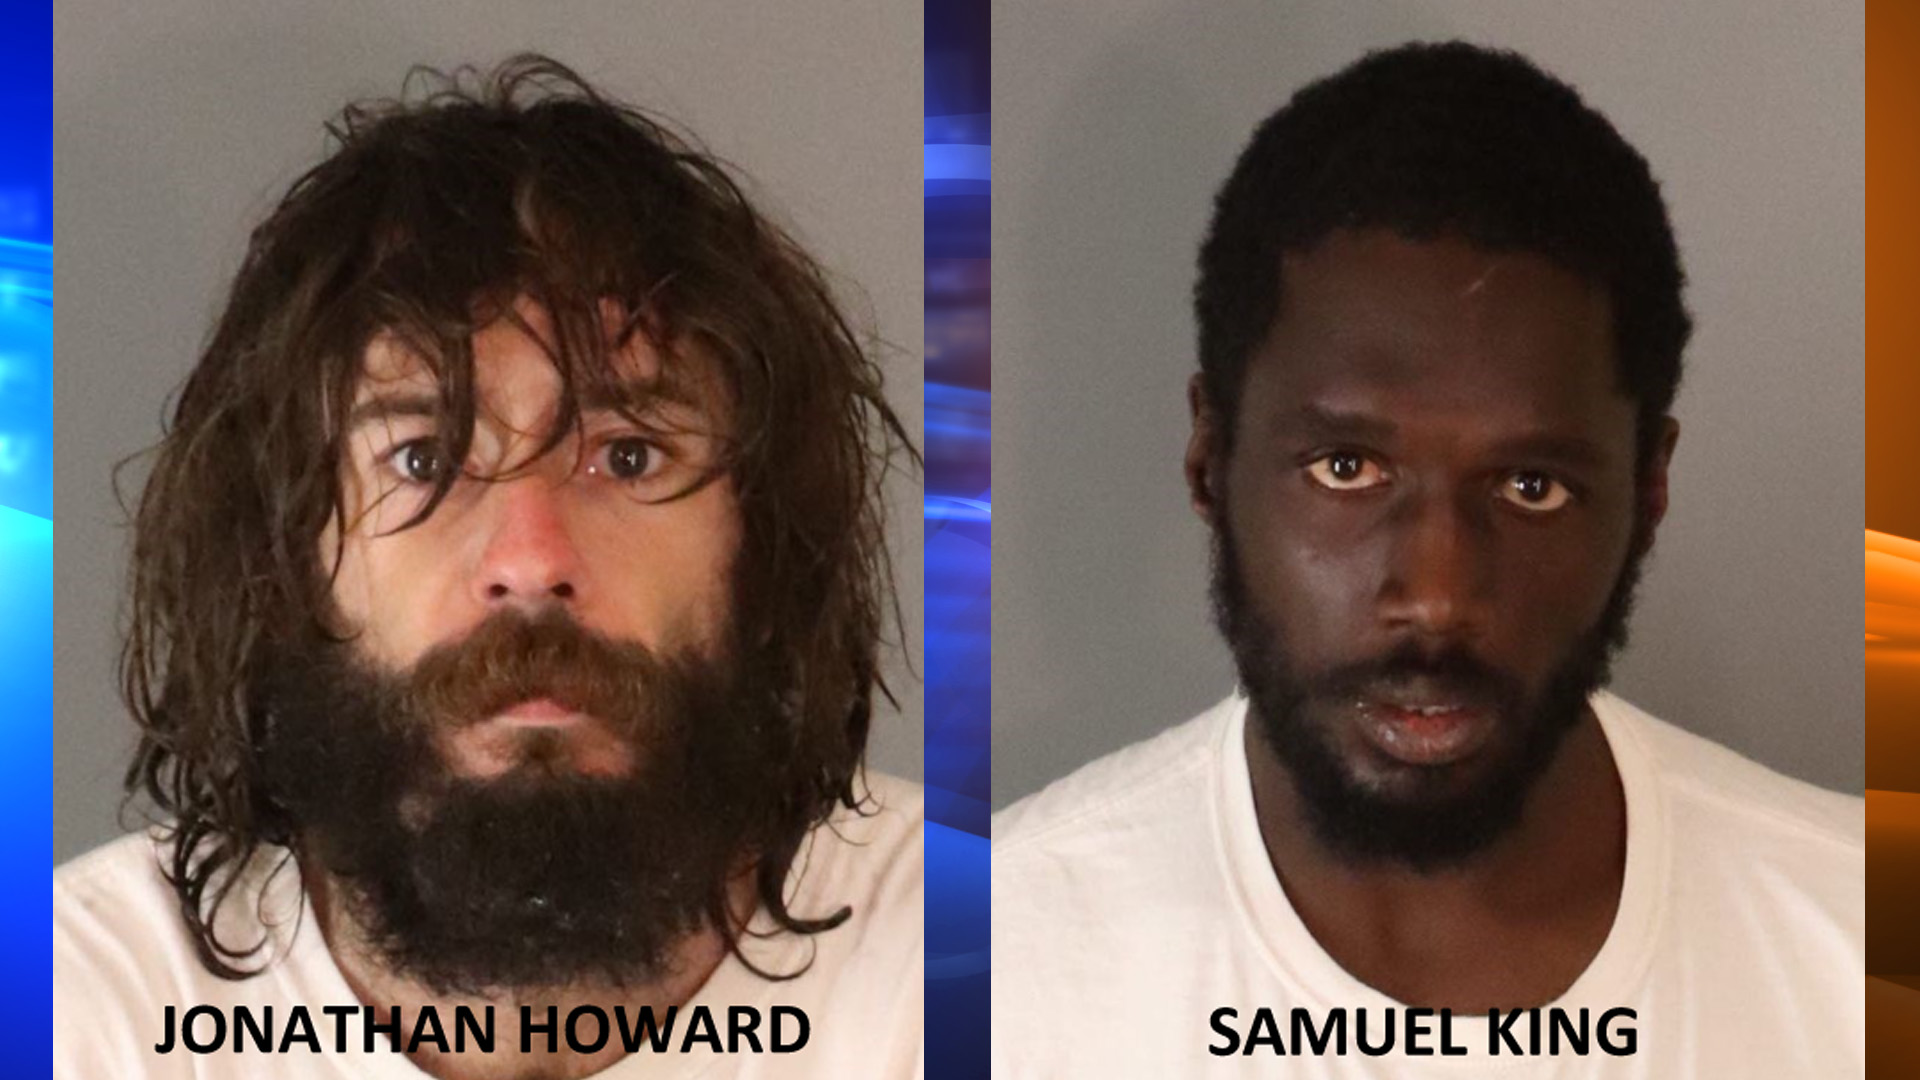 Arson suspects Jonathan Howard and Samuel King are seen in booking photos from the Riverside County Sheriff's Office.